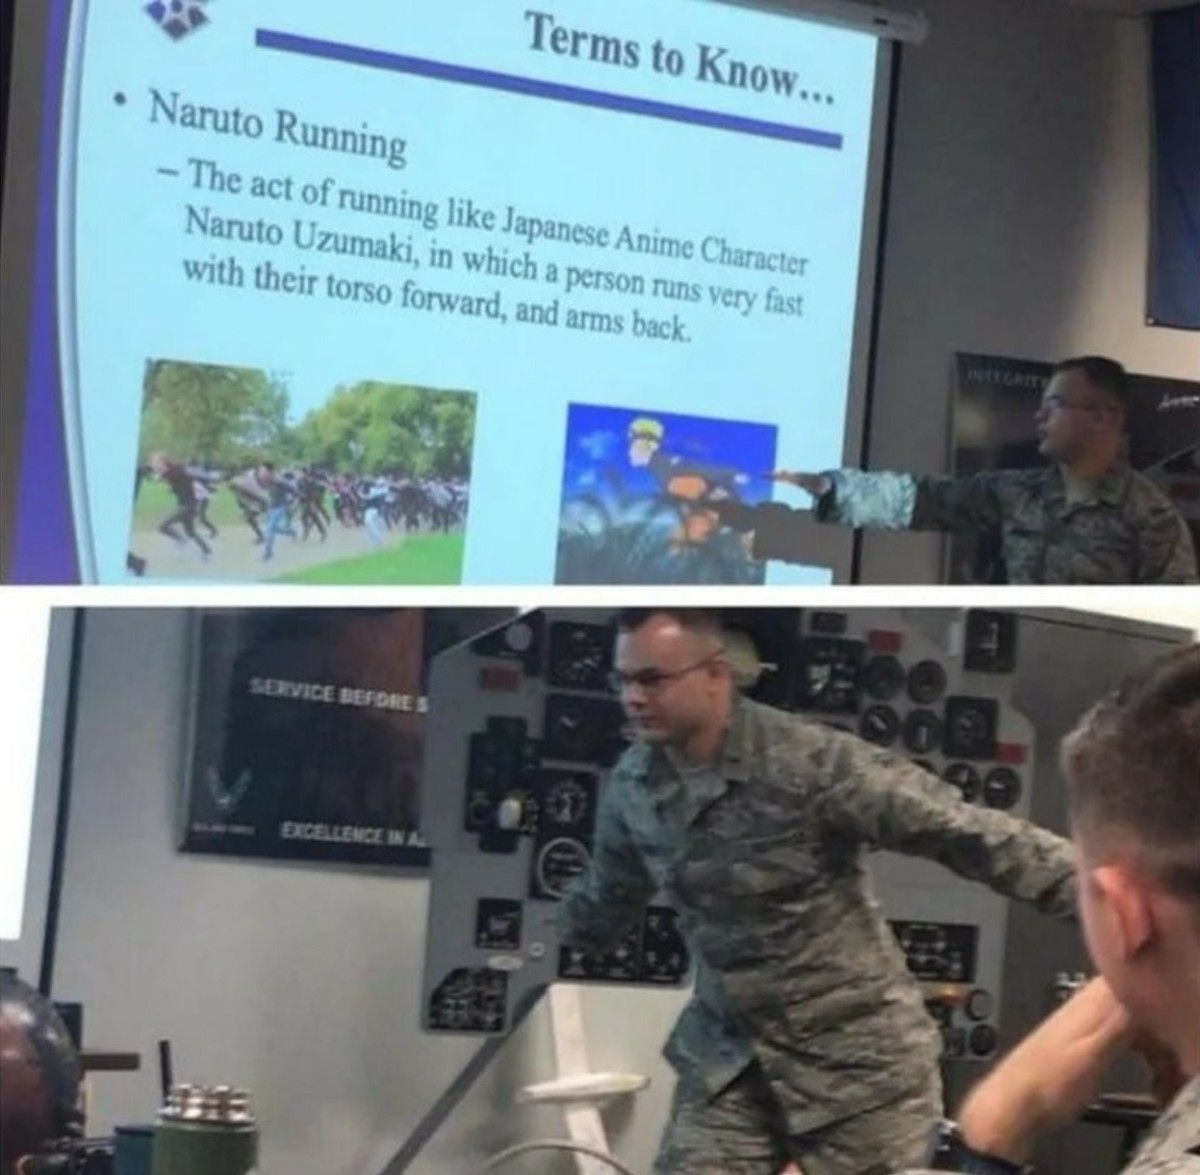 The military explaining memes be like